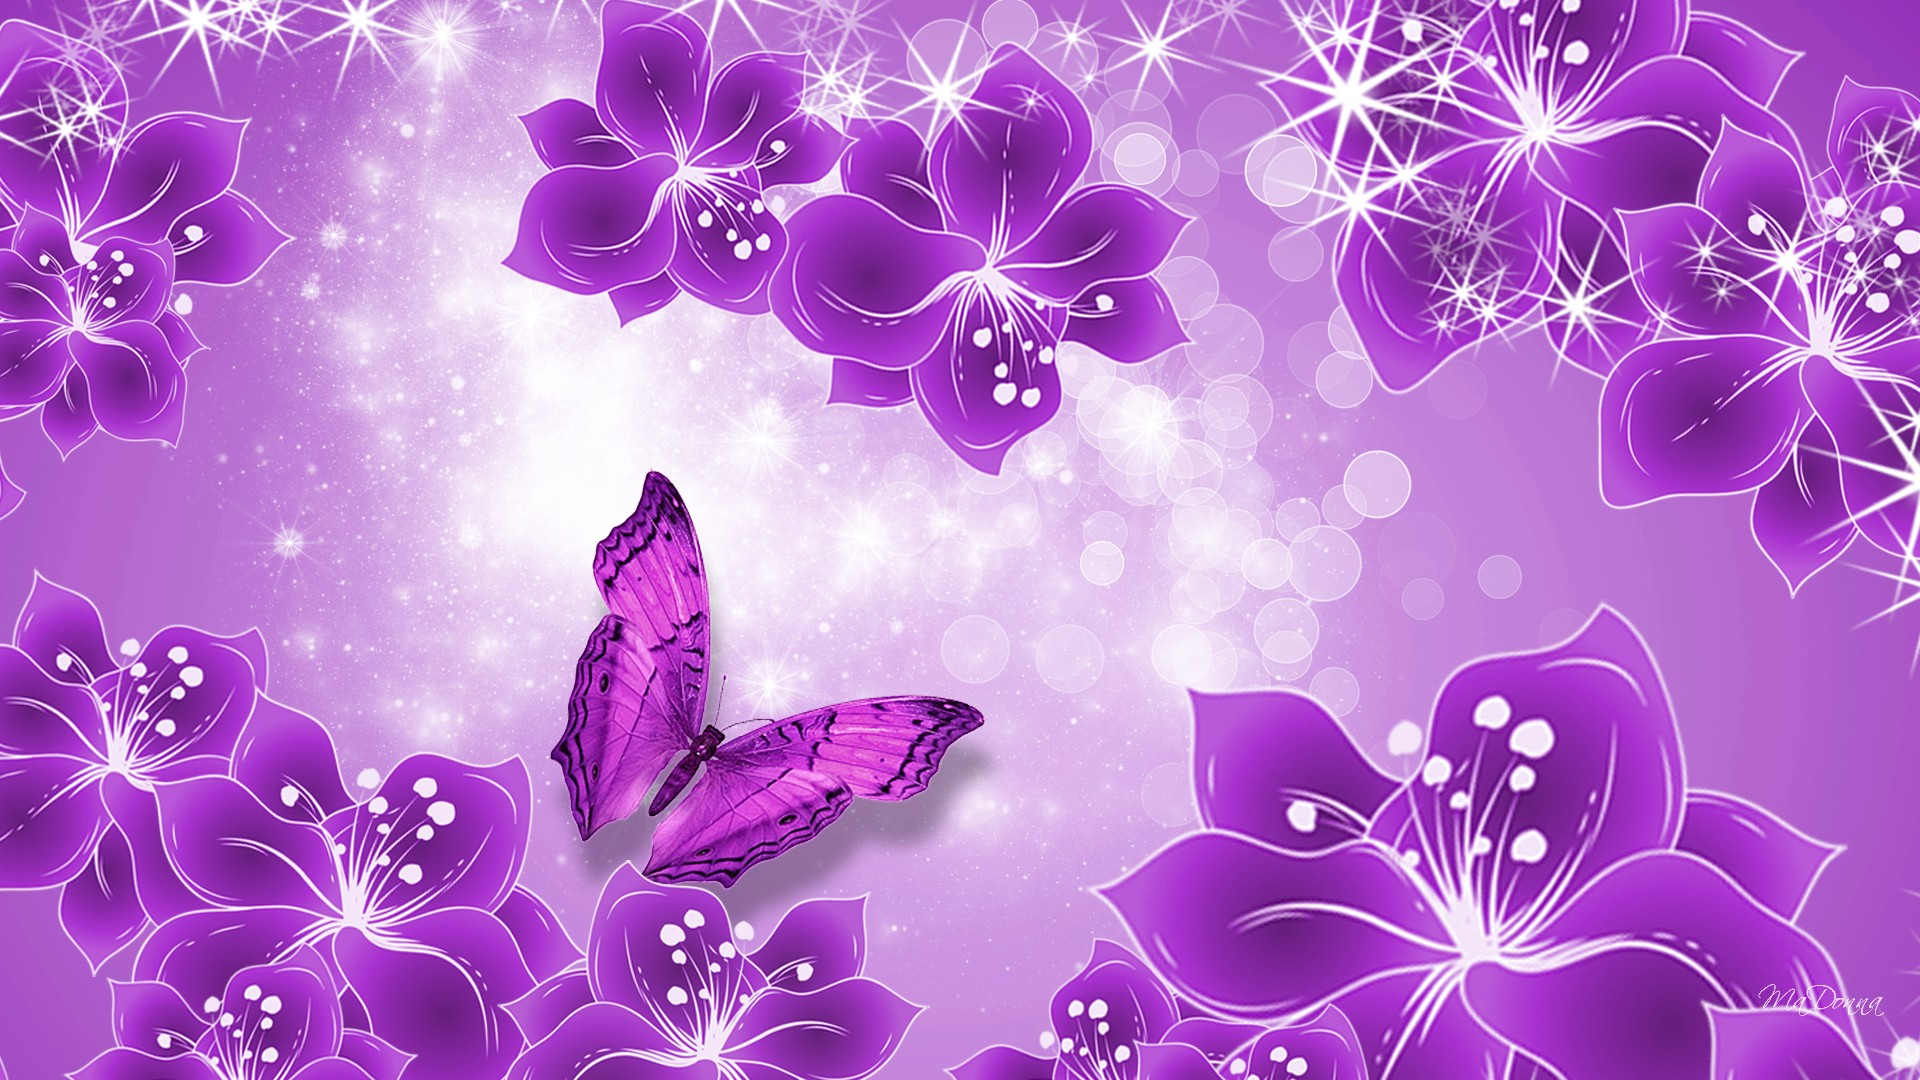 43 HD Purple WallpaperBackground Images To Download For 1920x1080